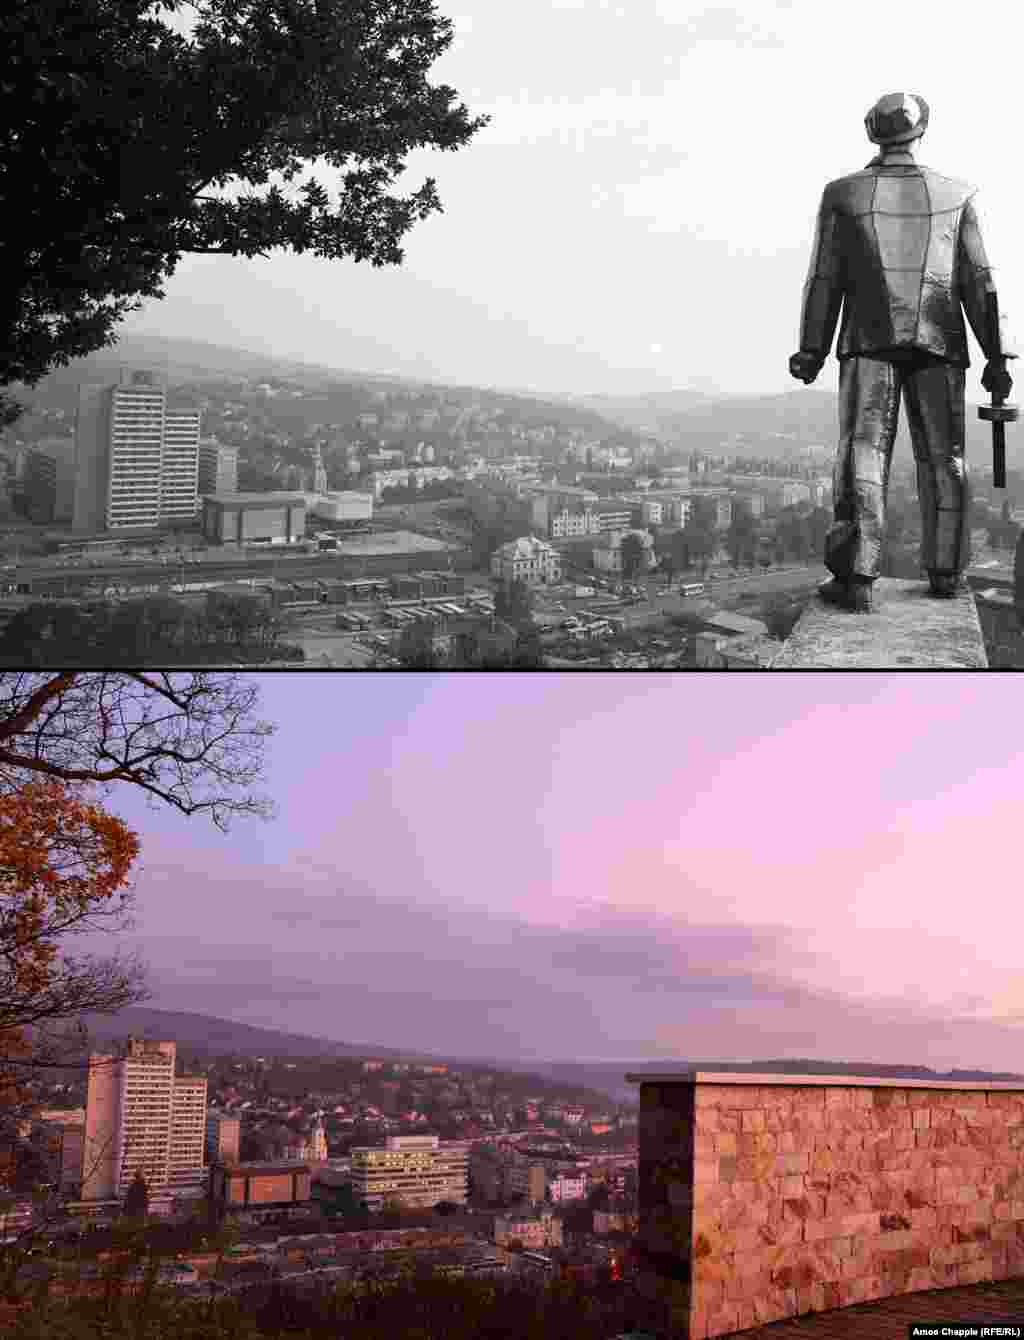 Salgotarjan 1982 - 2019 A five-meter chromed steel monument to a World War II partisan fighter on a hilltop overlooking Salgotarjan (top). The monument was removed in 1993 and now stands in a far less prominent spot outside the town center. On the site of the gleaming partisan is a lookout platform topped with a Hungarian flag. 1982 photo: Fortepan/Magyar Rendor